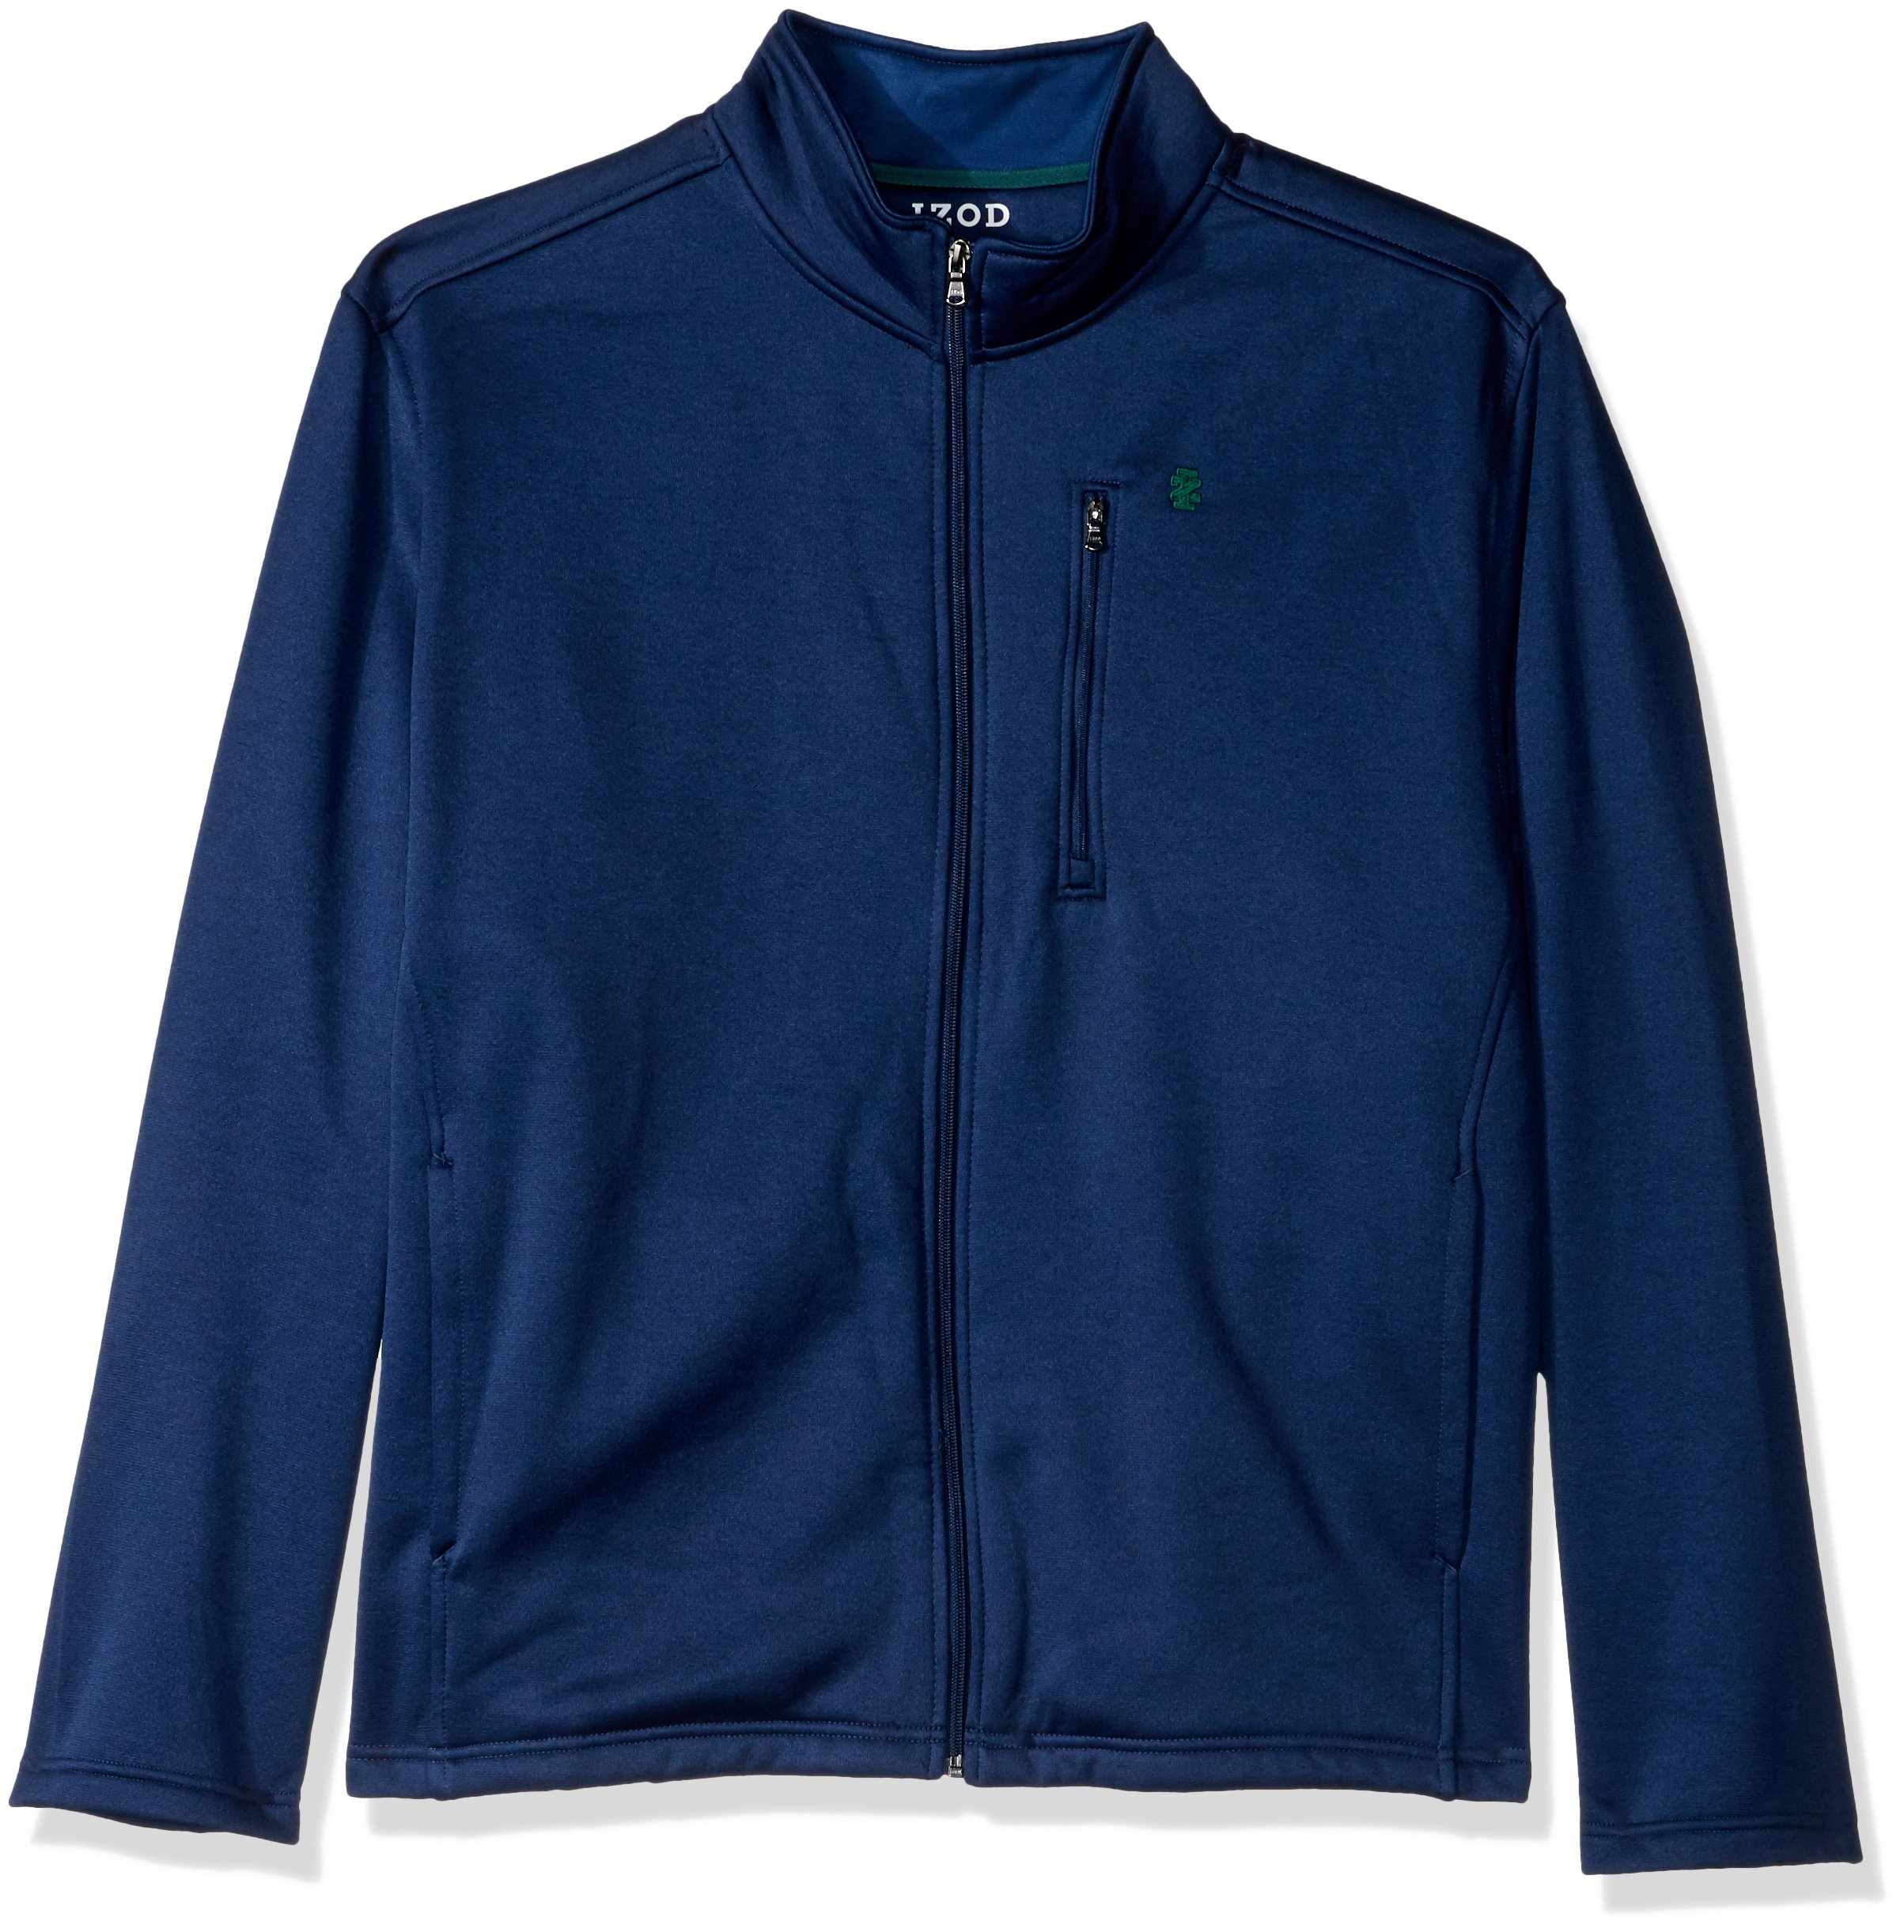 IZOD Men's Big and Tall Spectator Solid Fleece Jacket, Estate Blue Heather, 2X-Large Tall by IZOD